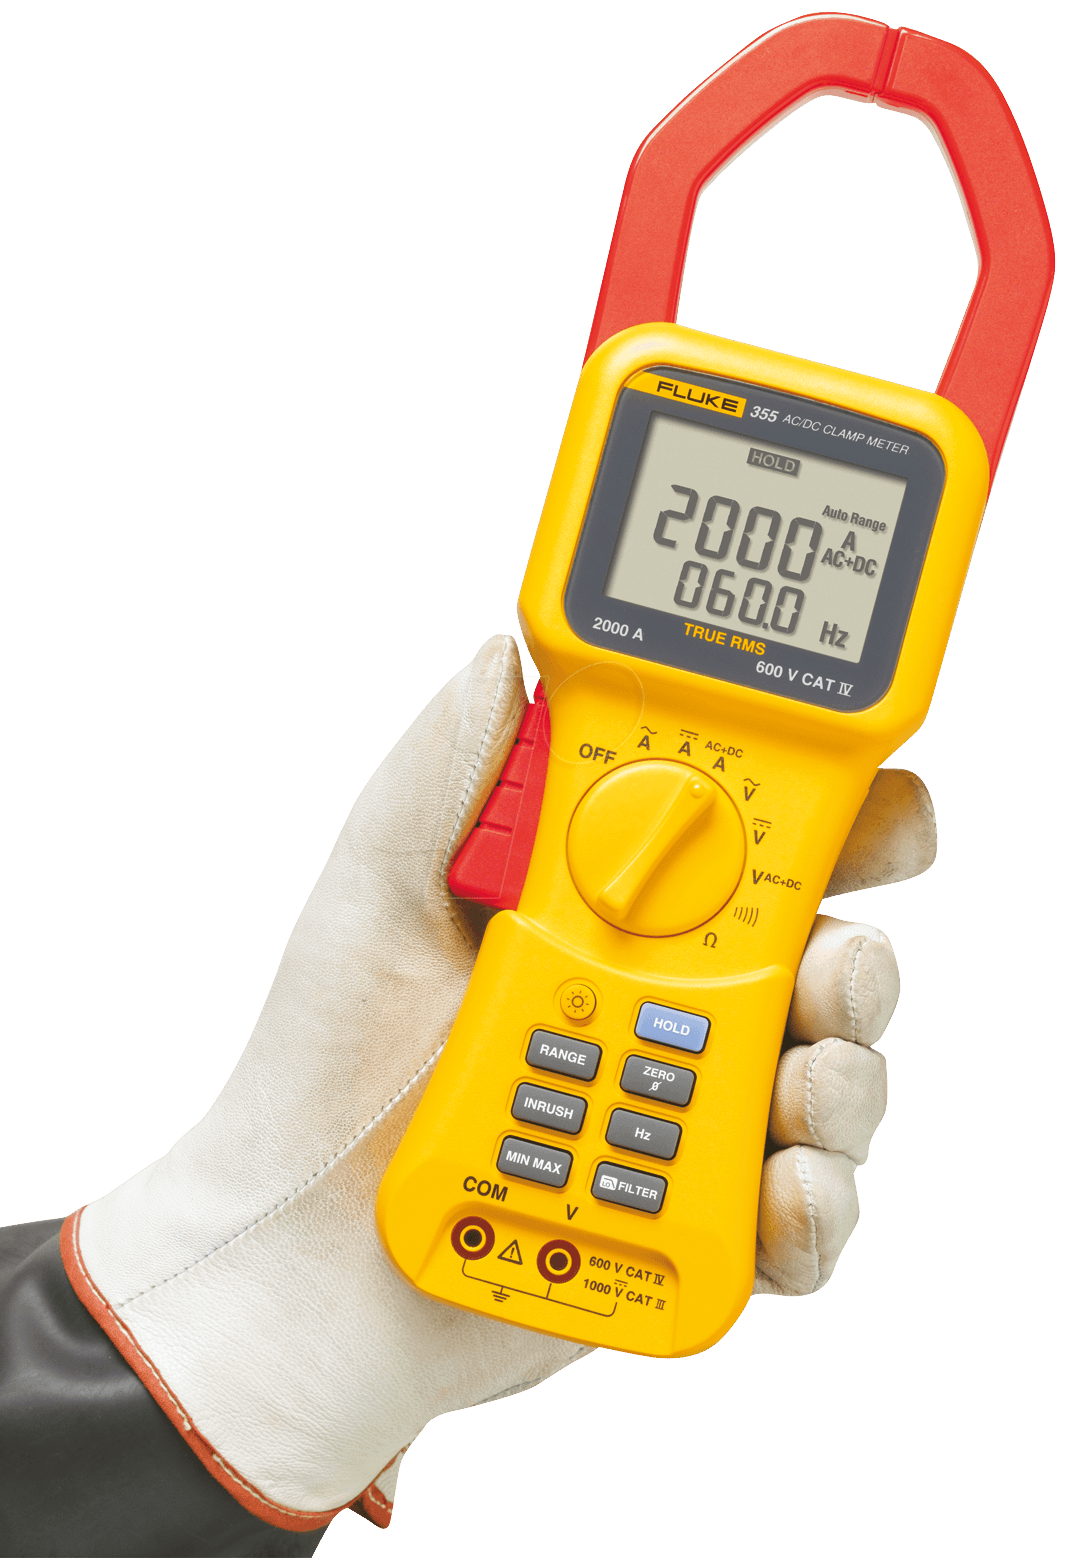 fluke 355 fluke true rms clamp meter for 2000 a at. Black Bedroom Furniture Sets. Home Design Ideas